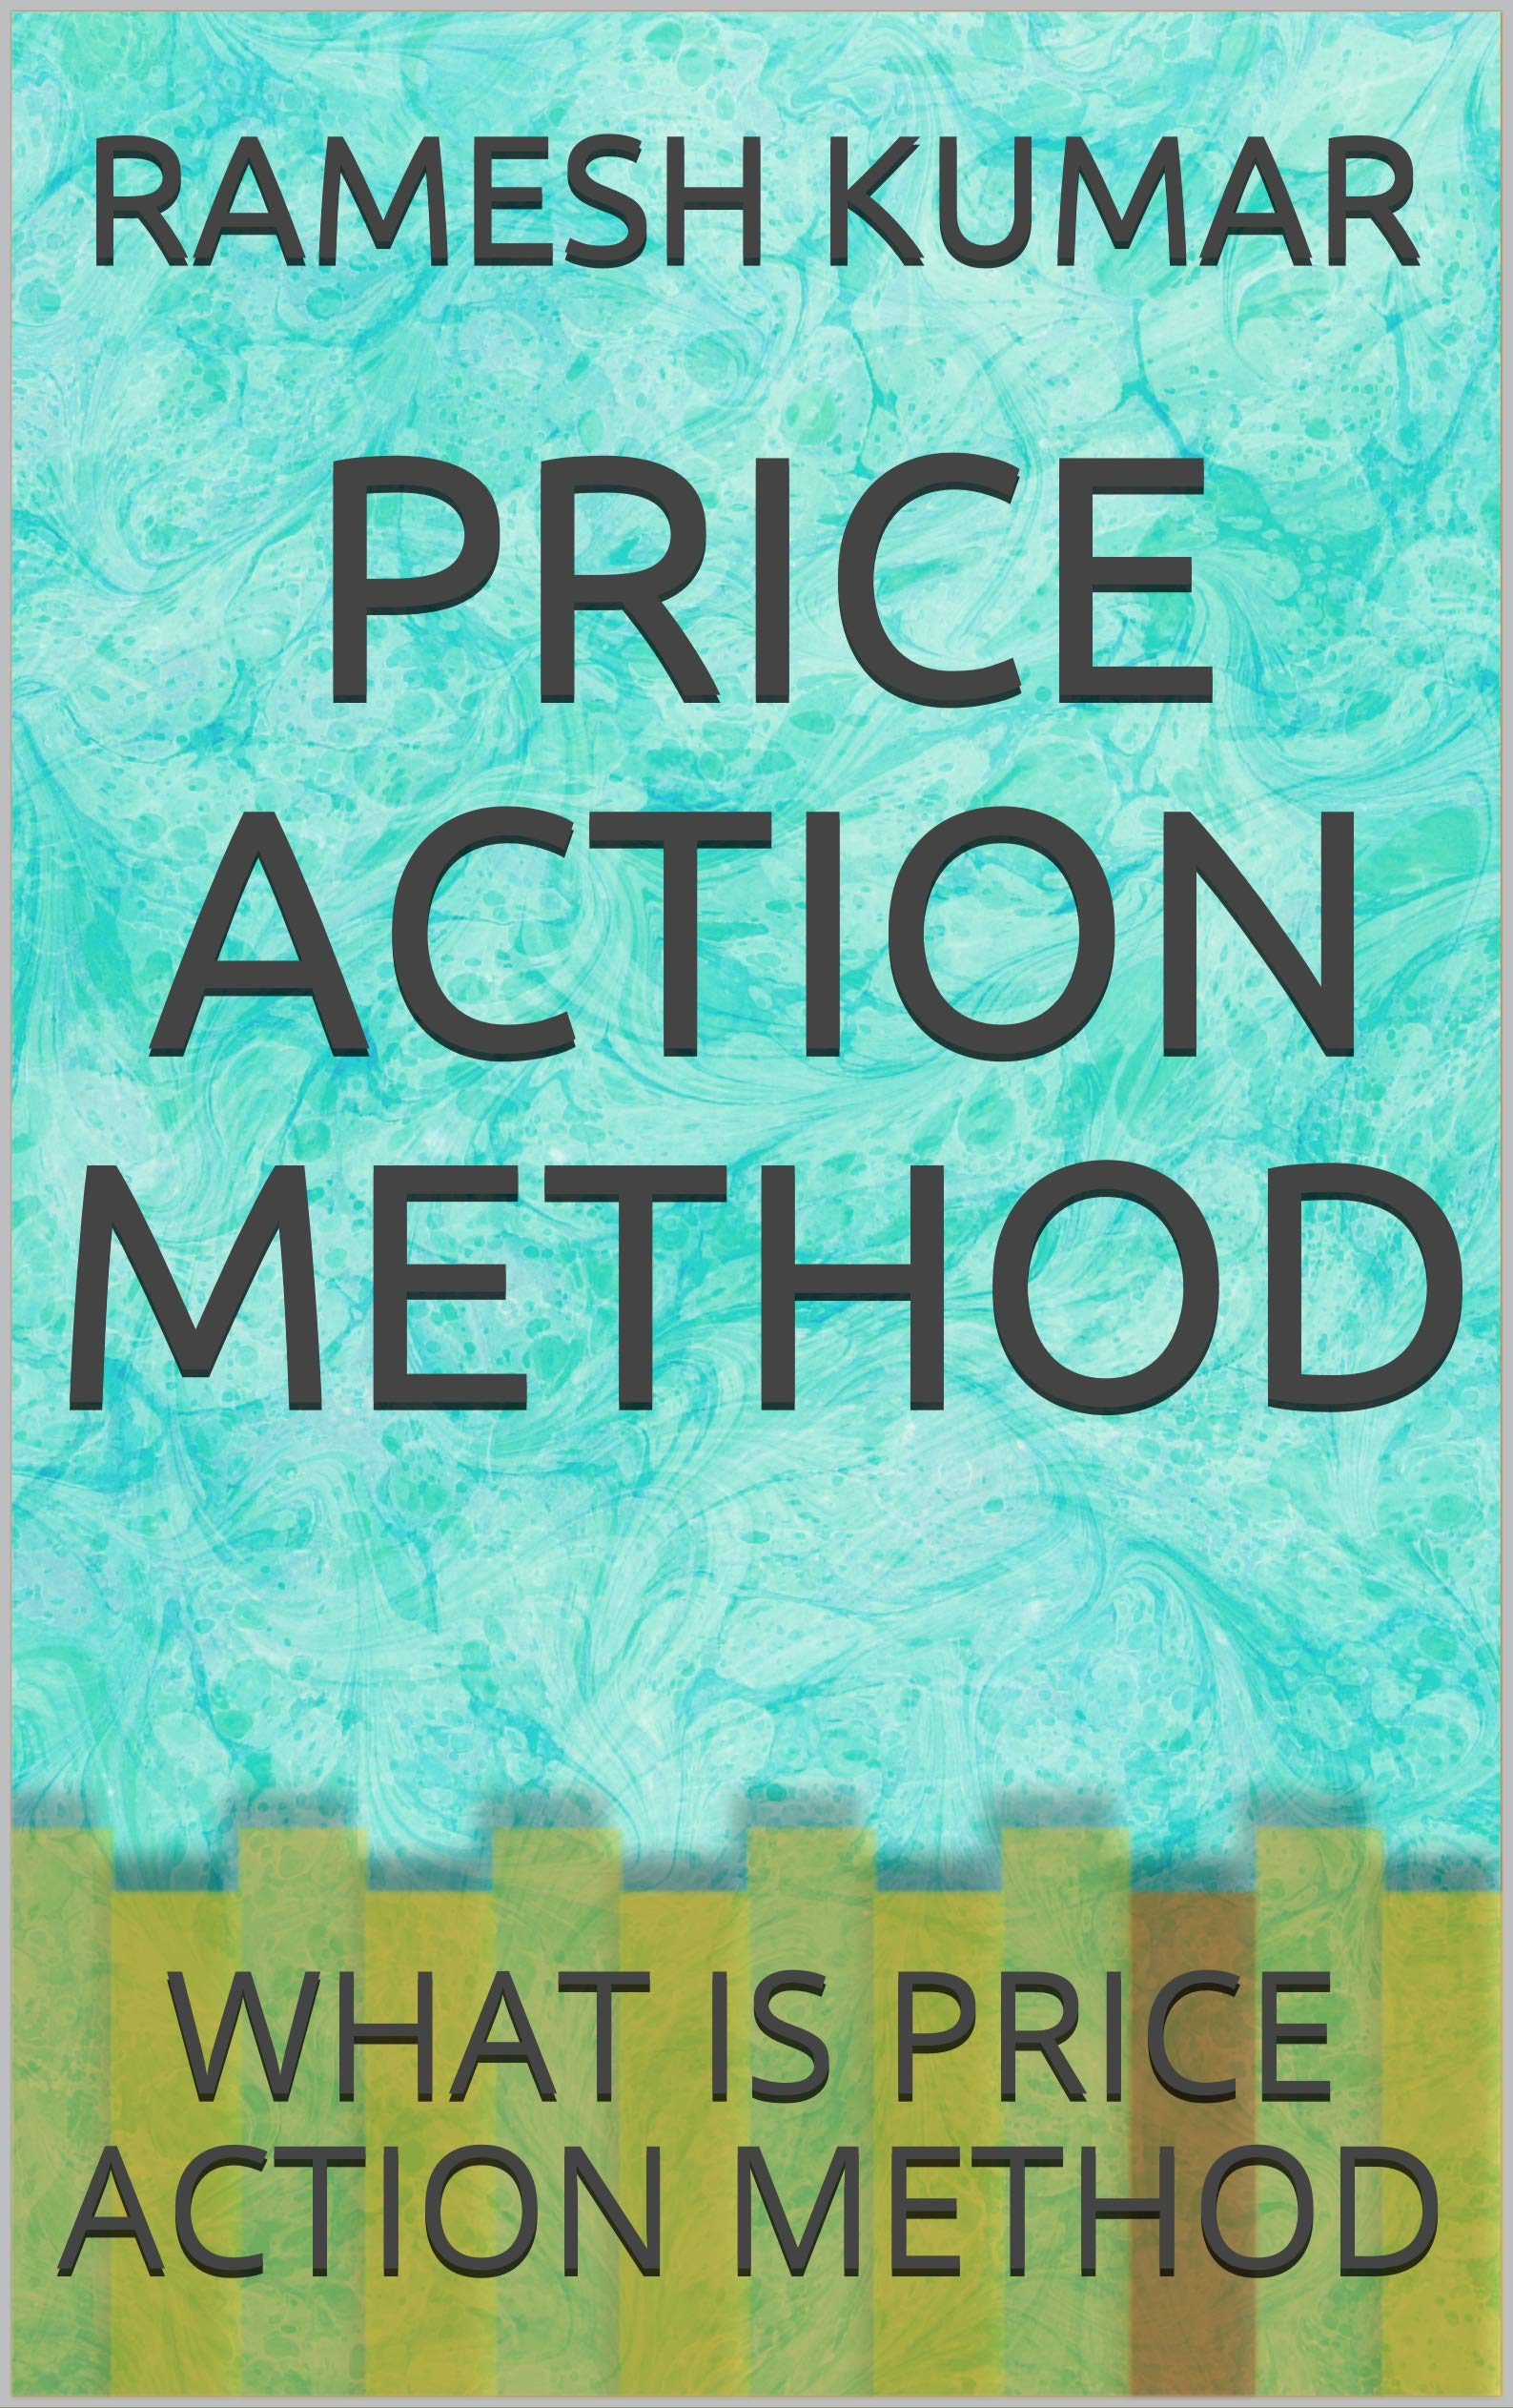 PRICE ACTION METHOD: WHAT IS PRICE ACTION METHOD